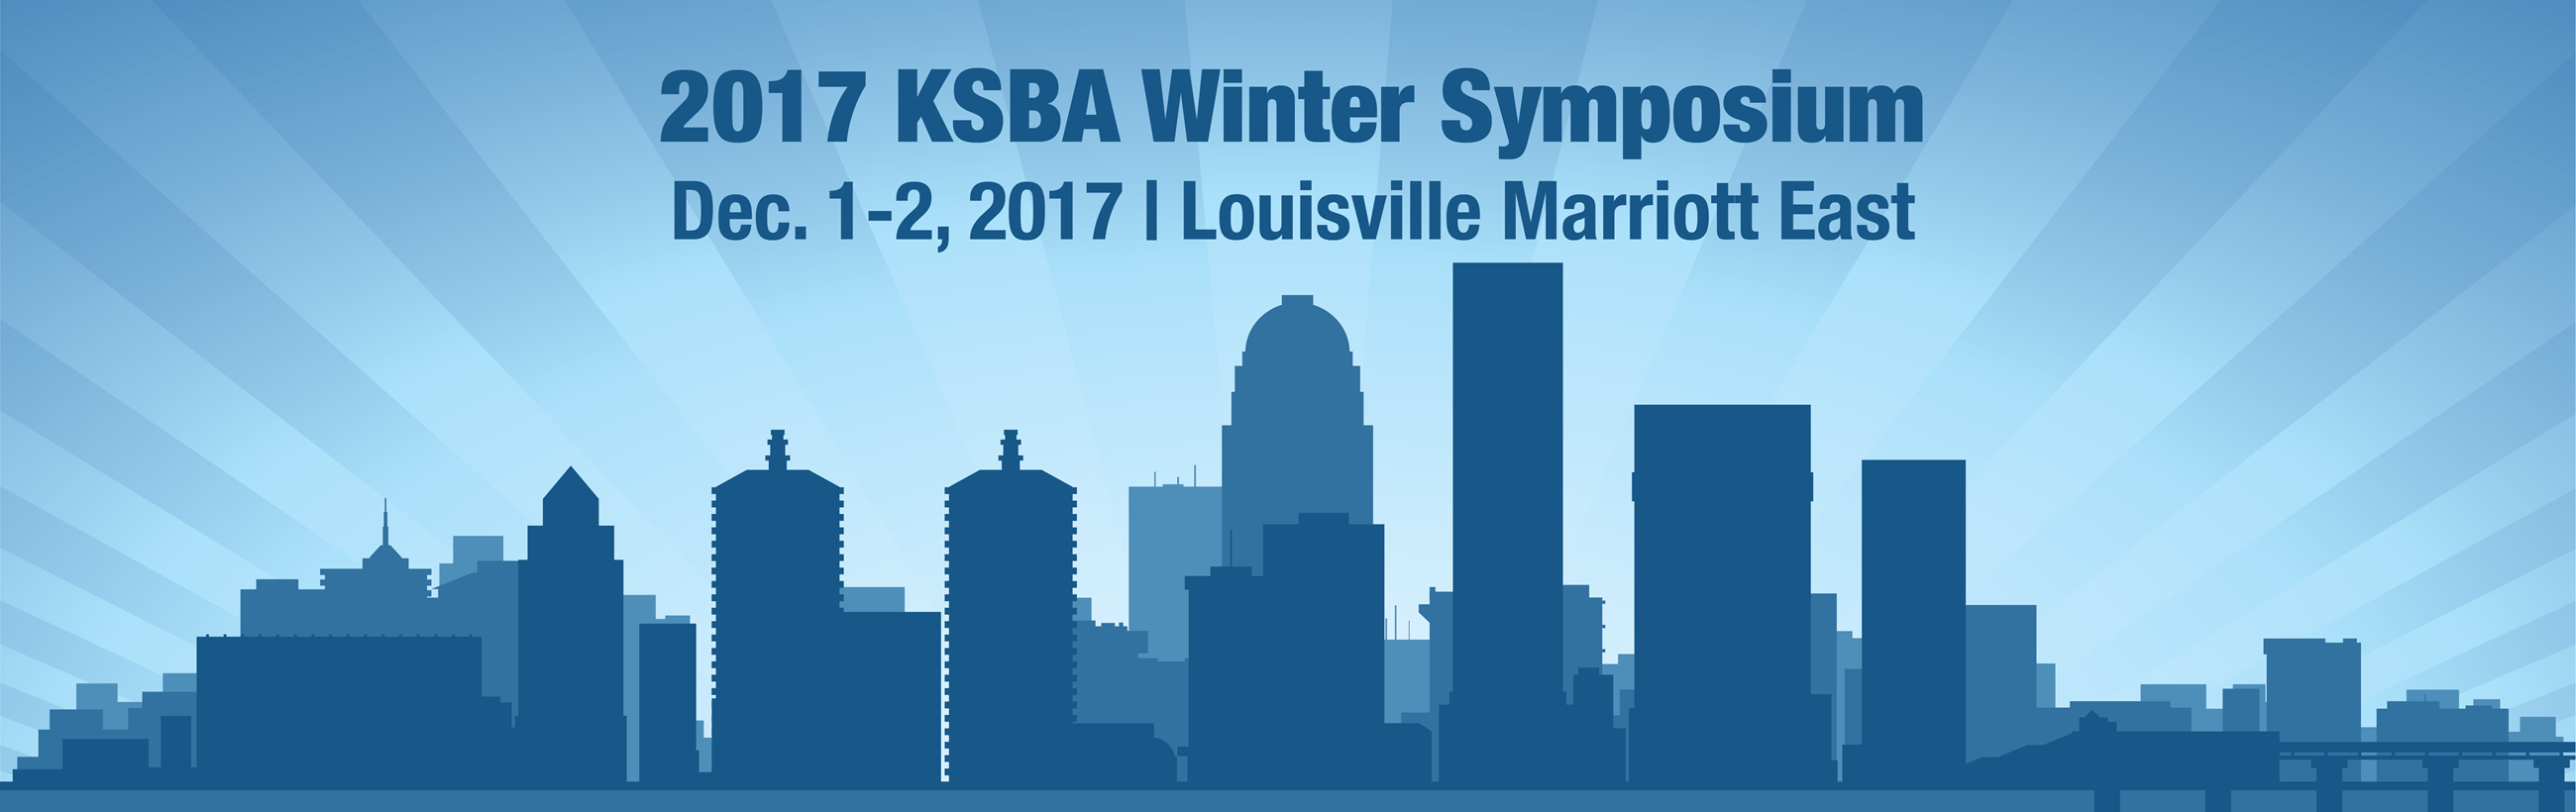 The 2017 KSBA Winter Symposium will be held Dec. 1-2 at the Louisville Marriott East